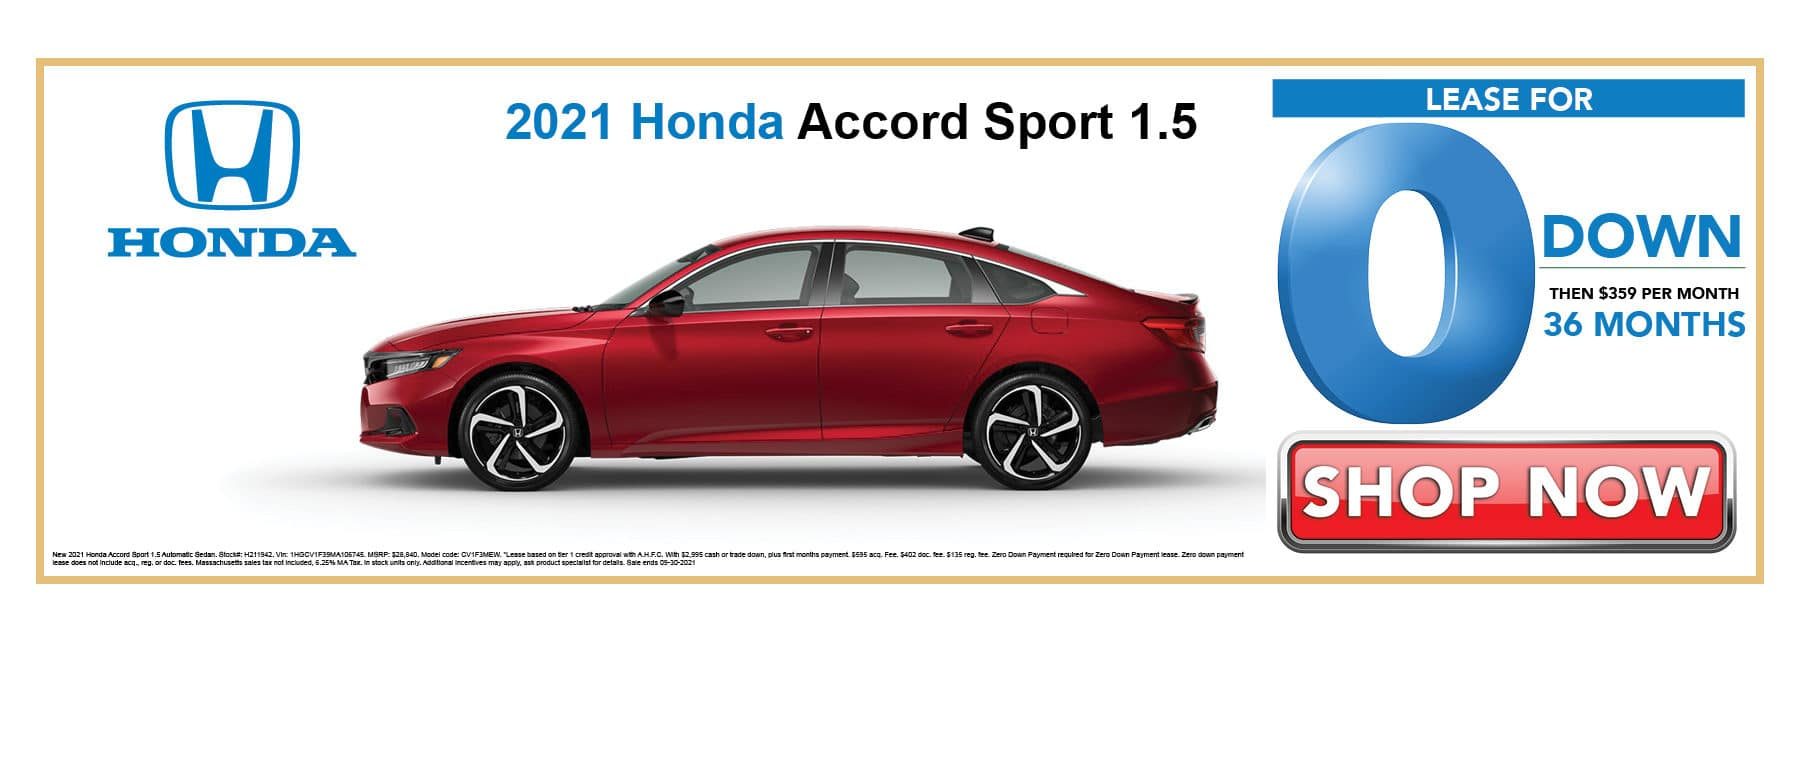 Lease 2021 Honda Accord Sport for 0 Down then $359 per Month for 36 Months